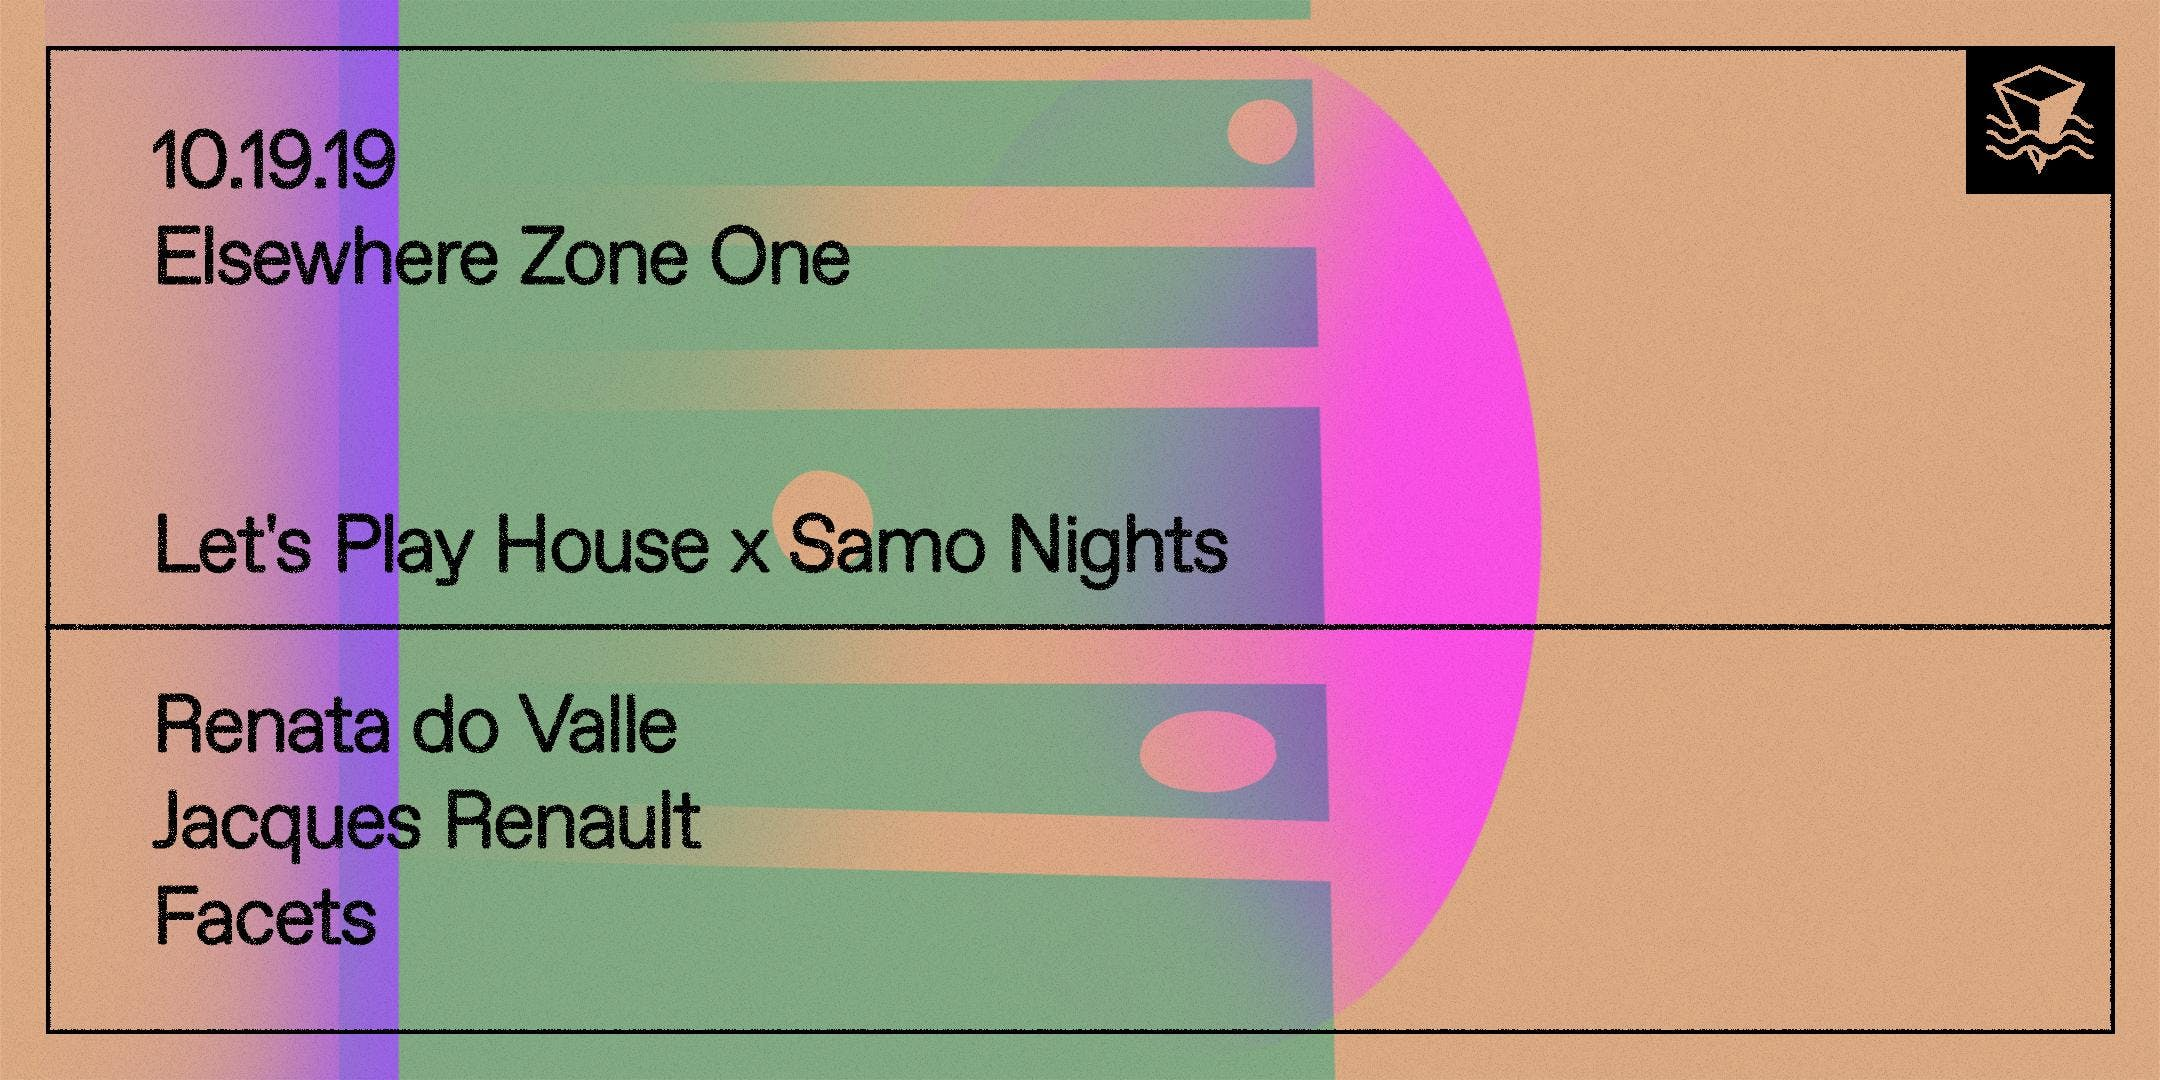 Let's Play House x Samo Nights w/ Renata do Valle, Jacques Renault & Facets